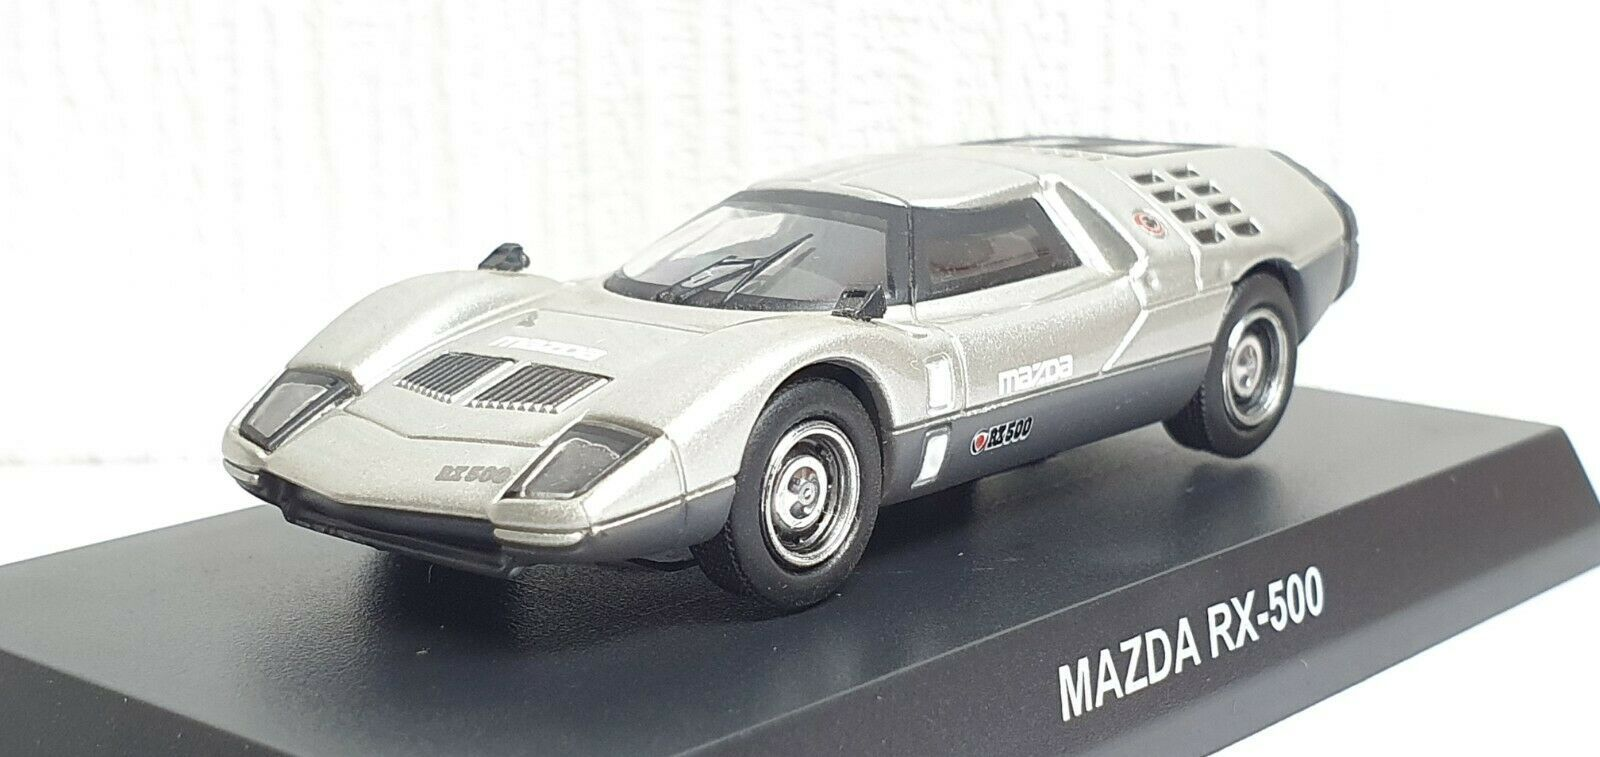 Primary image for 1/64 Kyosho MAZDA RX-500 SILVER diecast car model